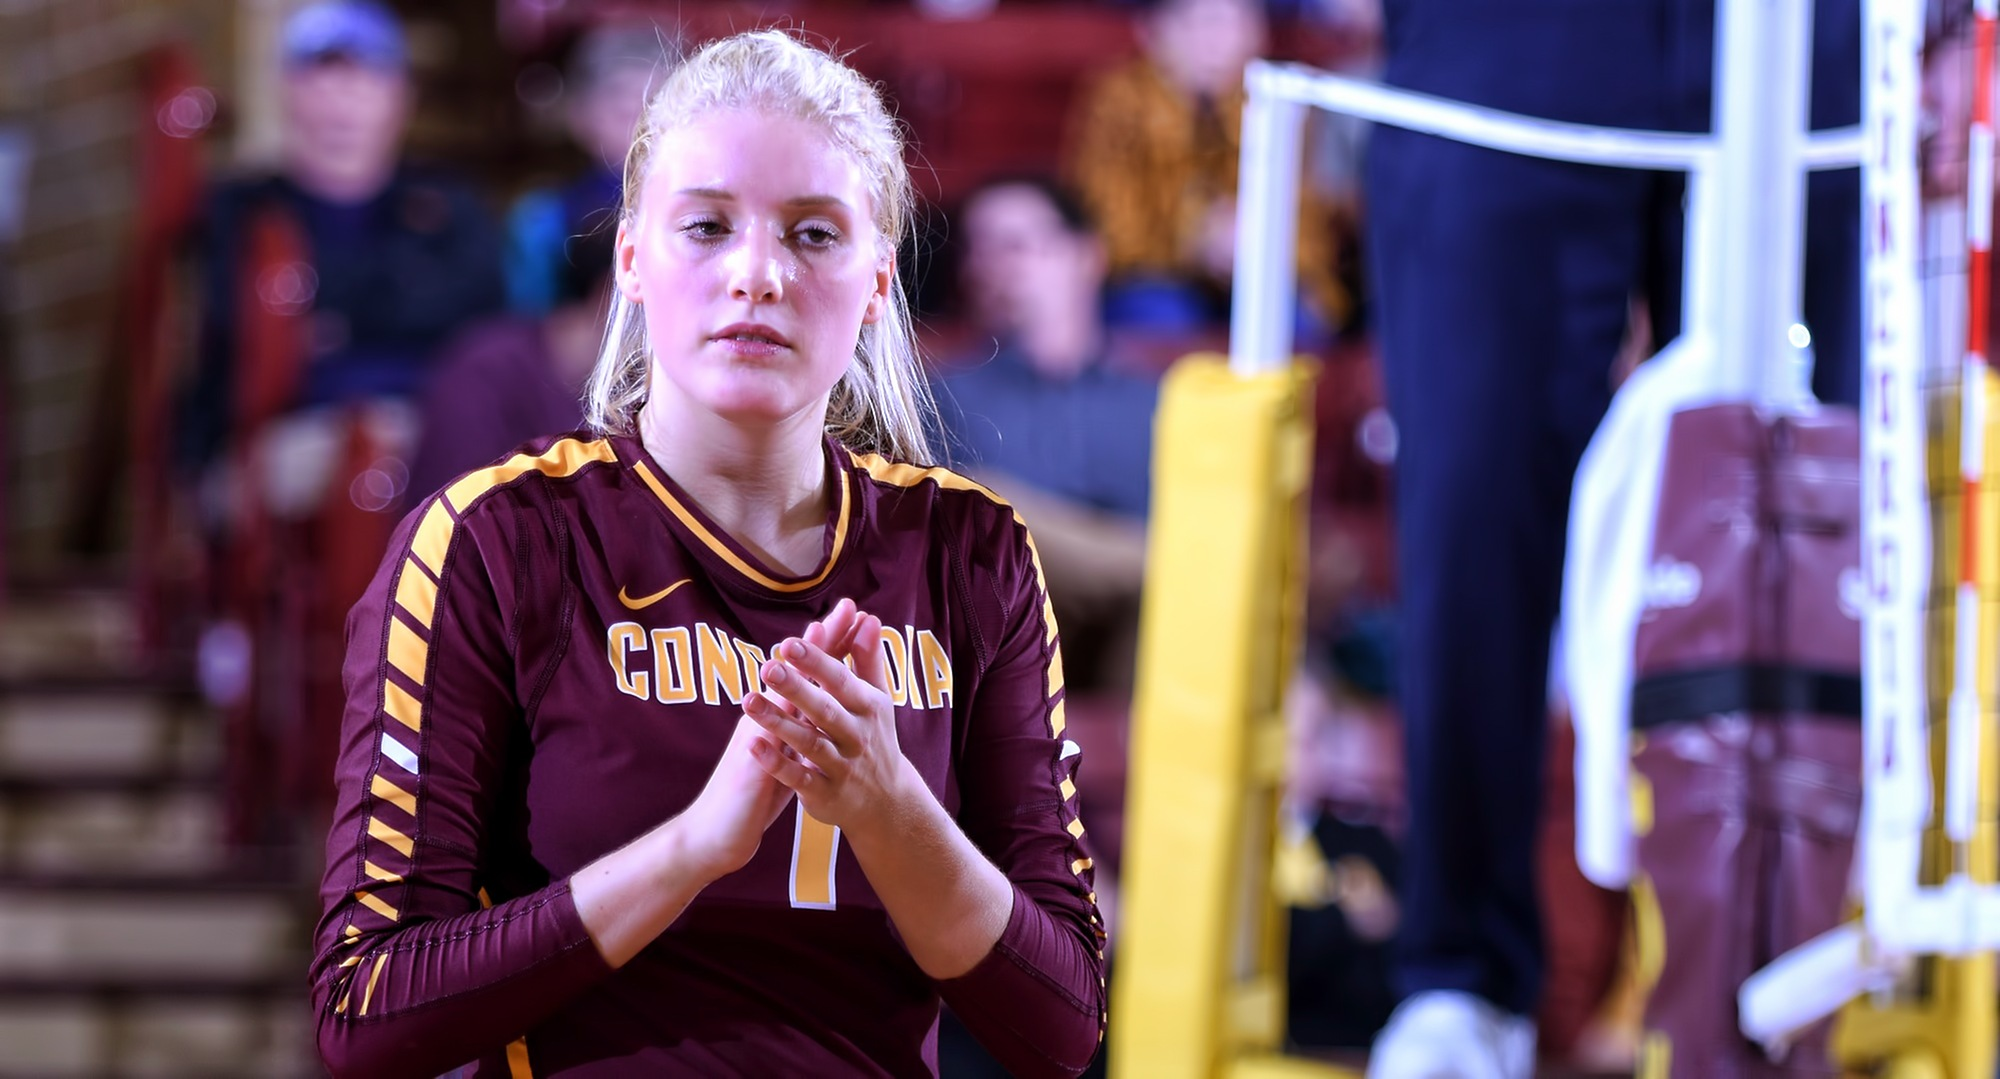 Bailey Gronner had a career-high 13 kills in the Cobbers' match at St. Mary's.